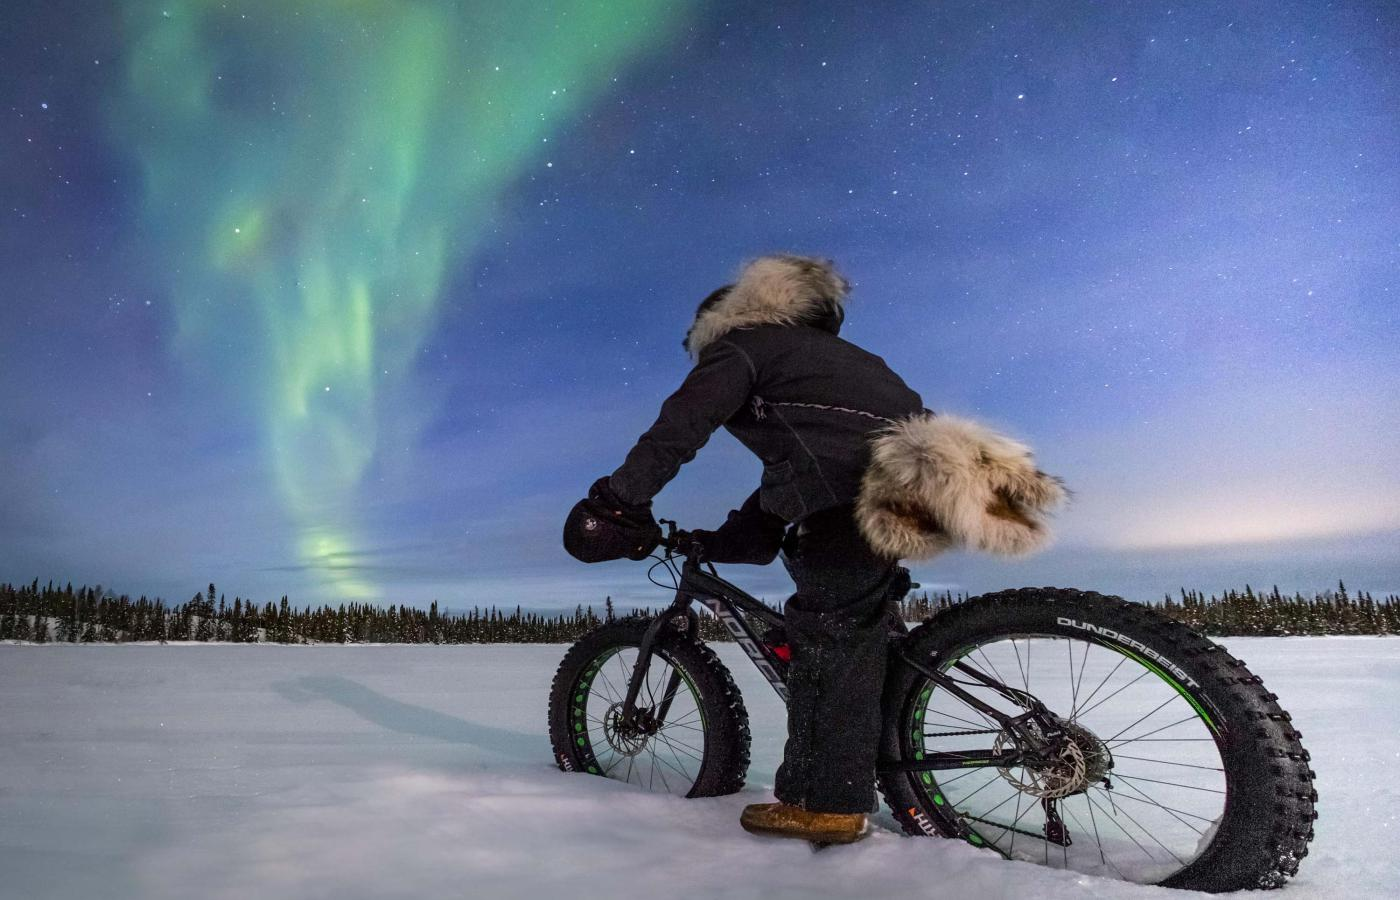 Fat-biking across a frozen lake in Canada's Northwest Territories as the Northern Lights dazzle overhead.